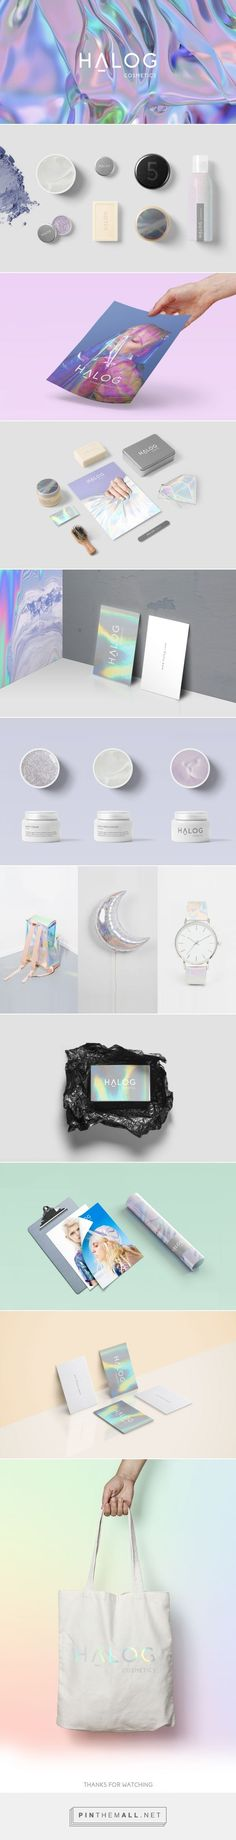 Halog Cosmetics Branding by Katerina Petridou Web Design Agency, Brand Identity Design, Graphic Design Branding, Corporate Design, Branding Agency, Business Branding, Identity Branding, Brand Packaging, Packaging Design